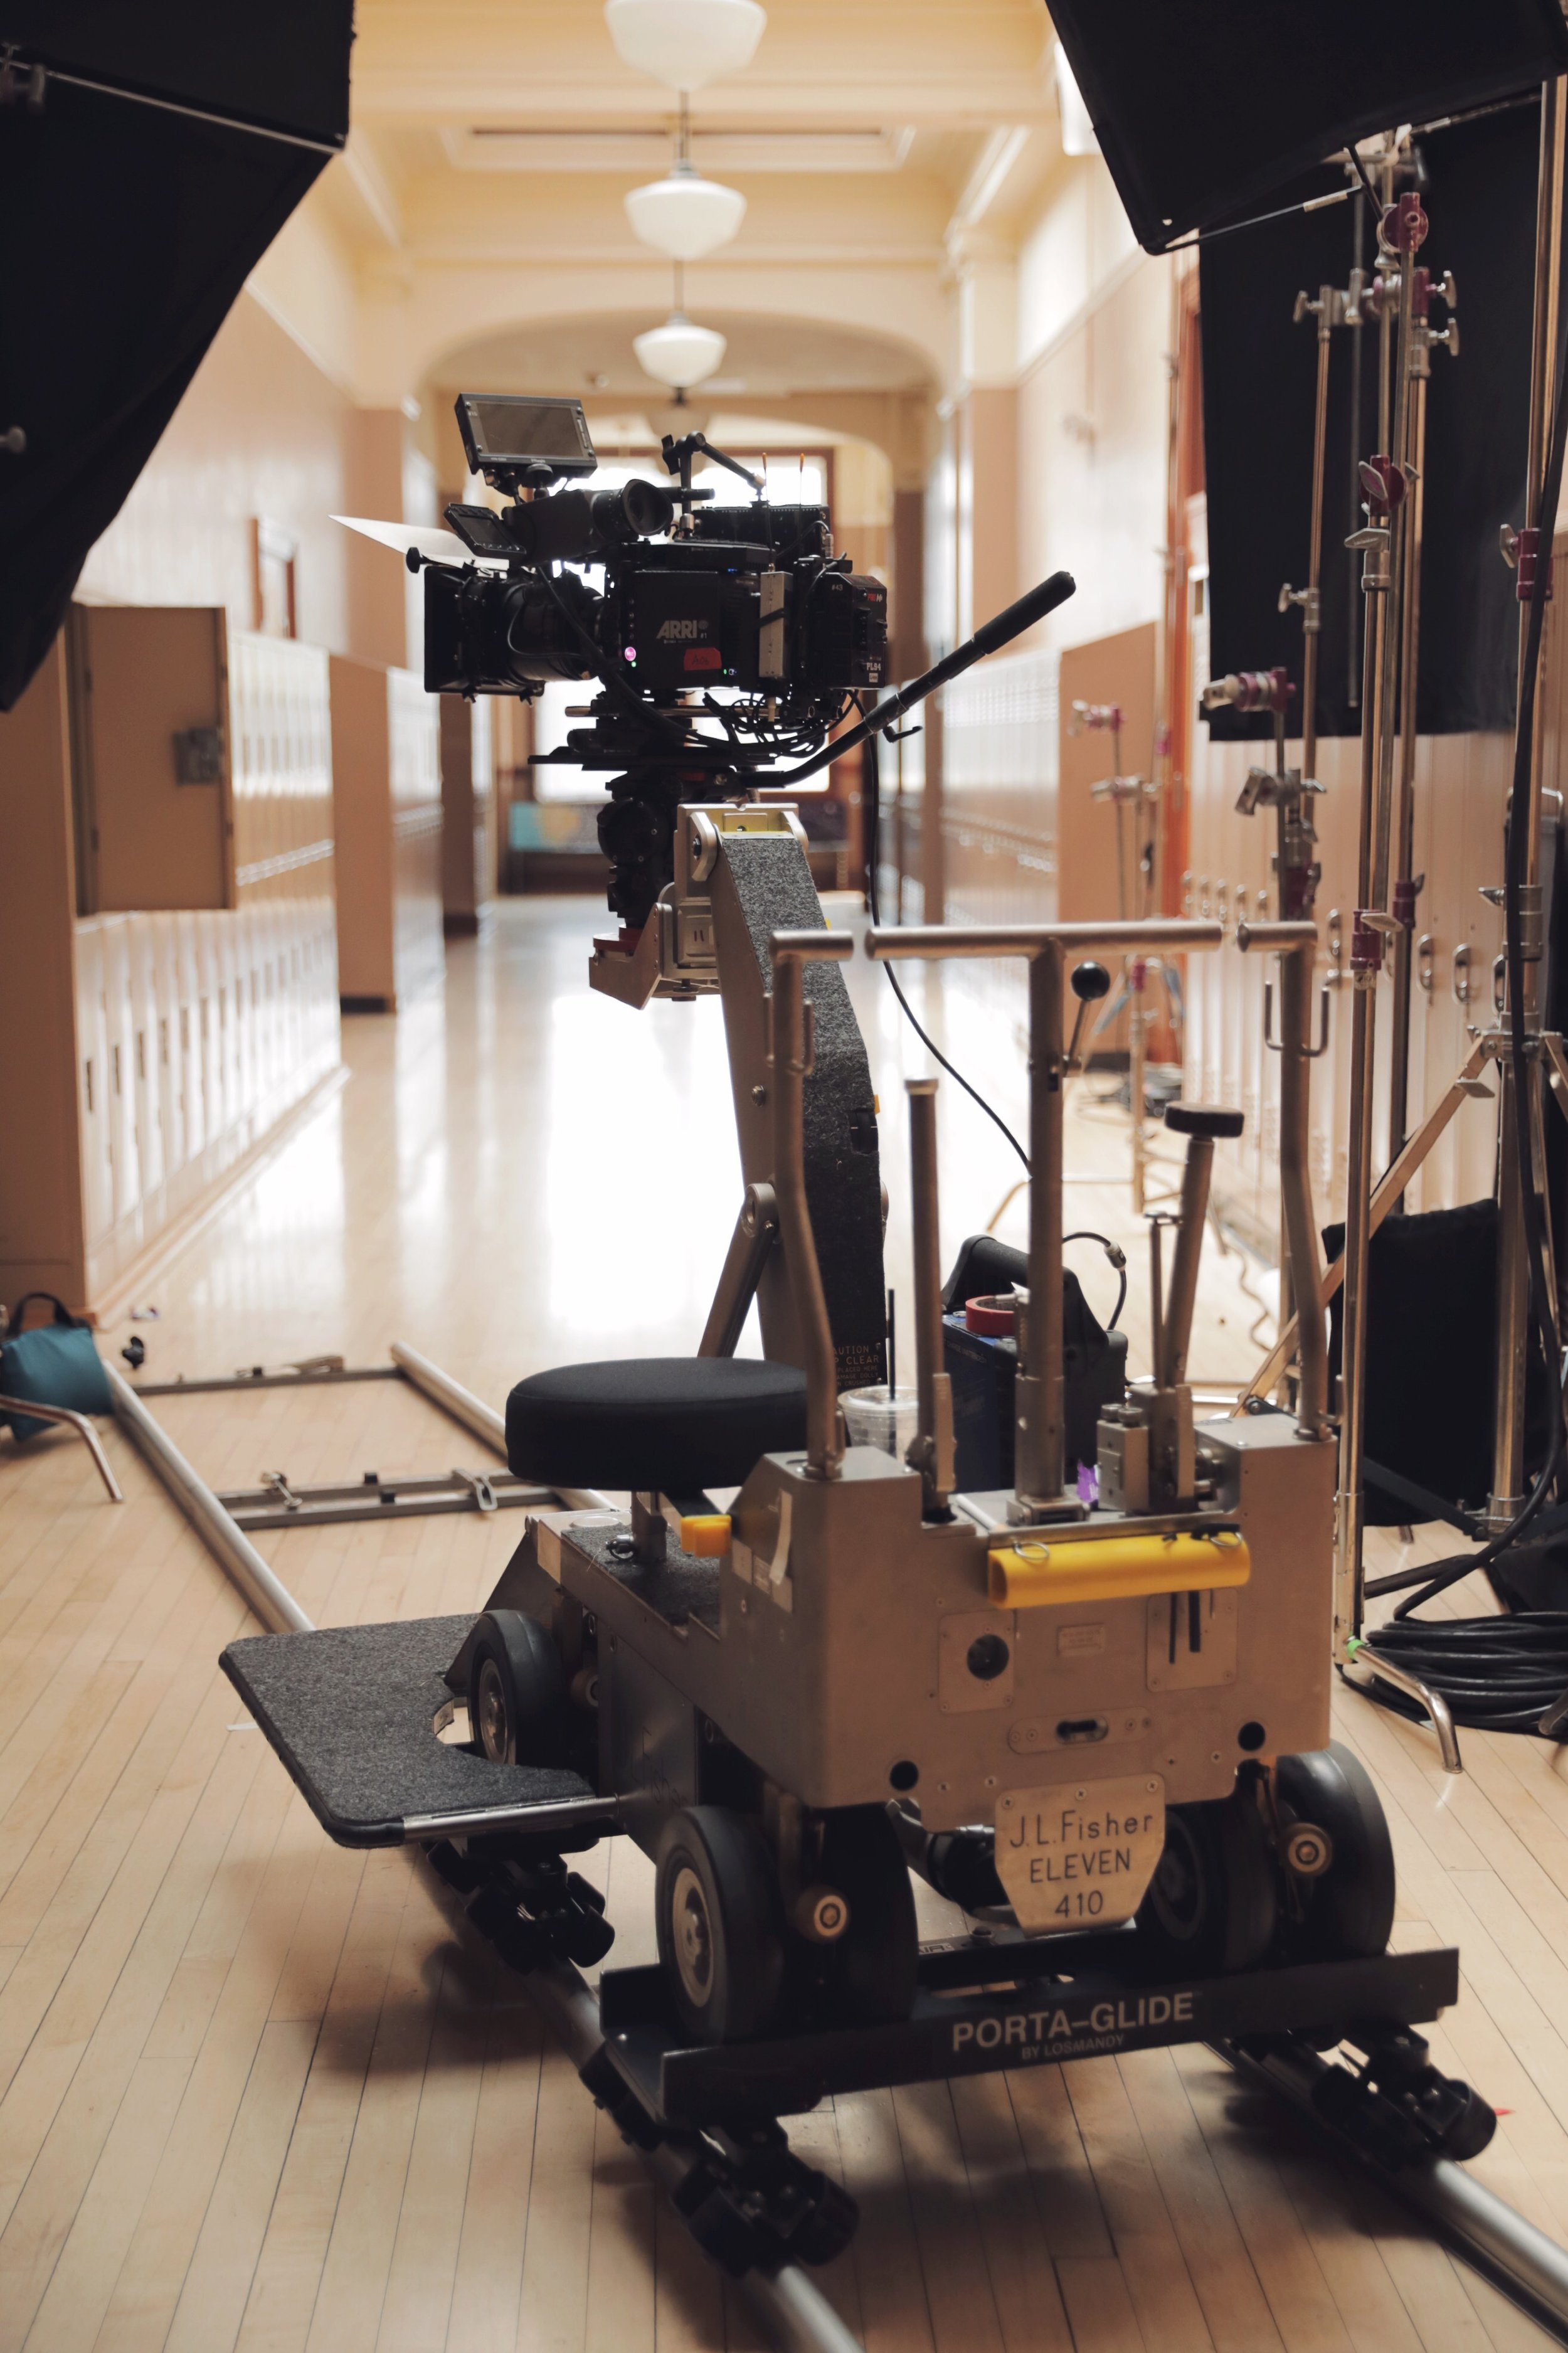 finsher 11 dolly bts.JPG